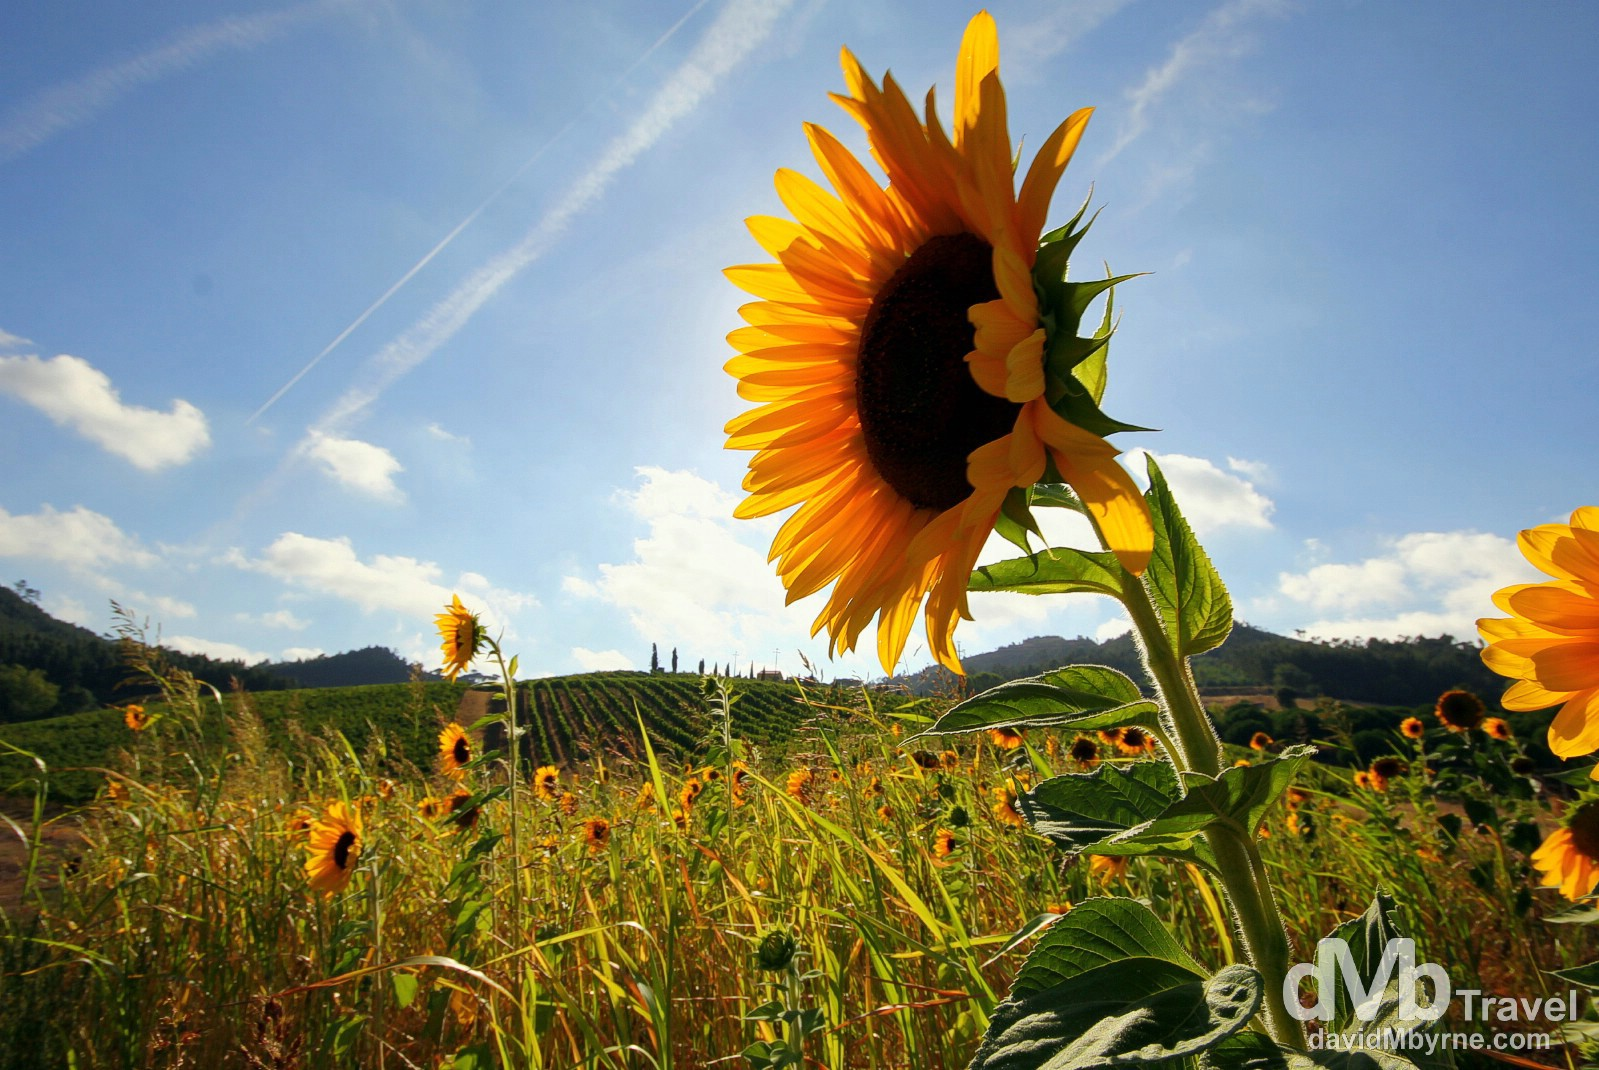 Sunflowers at sunset in the estate of Quinta de Sant'Ana in the hills above Gradil, Portugal. August 23rd 2013.